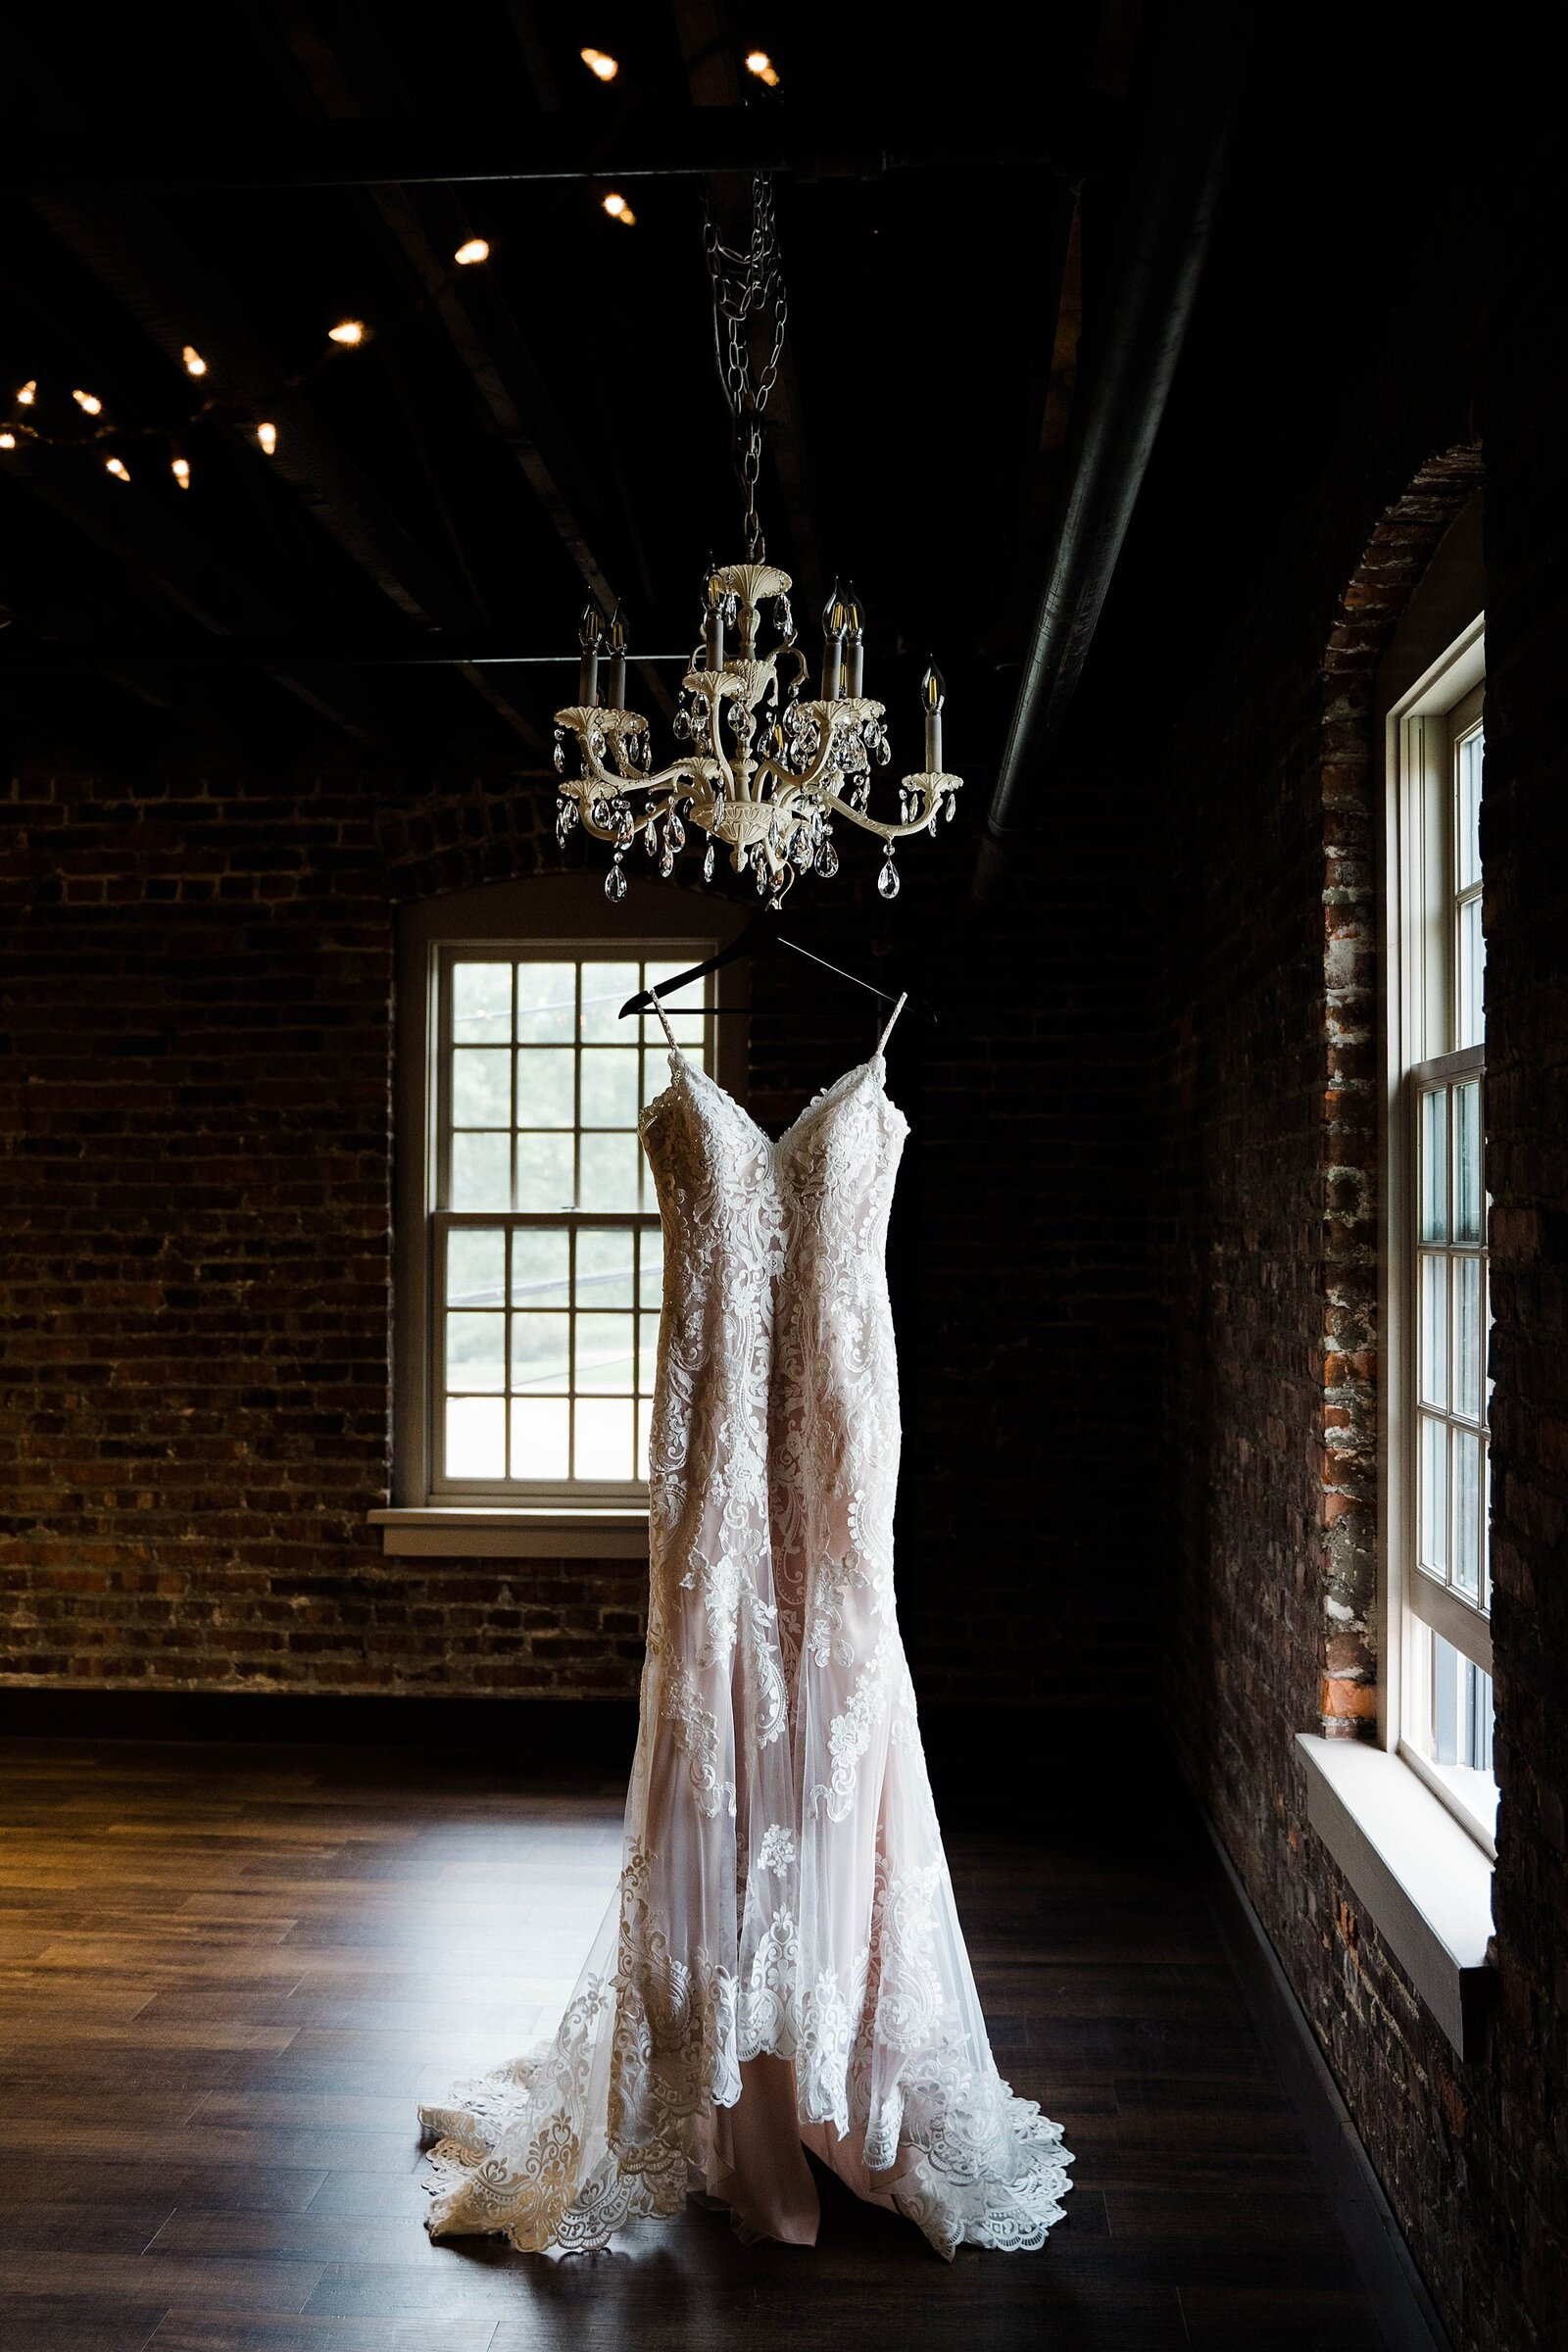 Bride's dress hangs from chandellier at The Beck